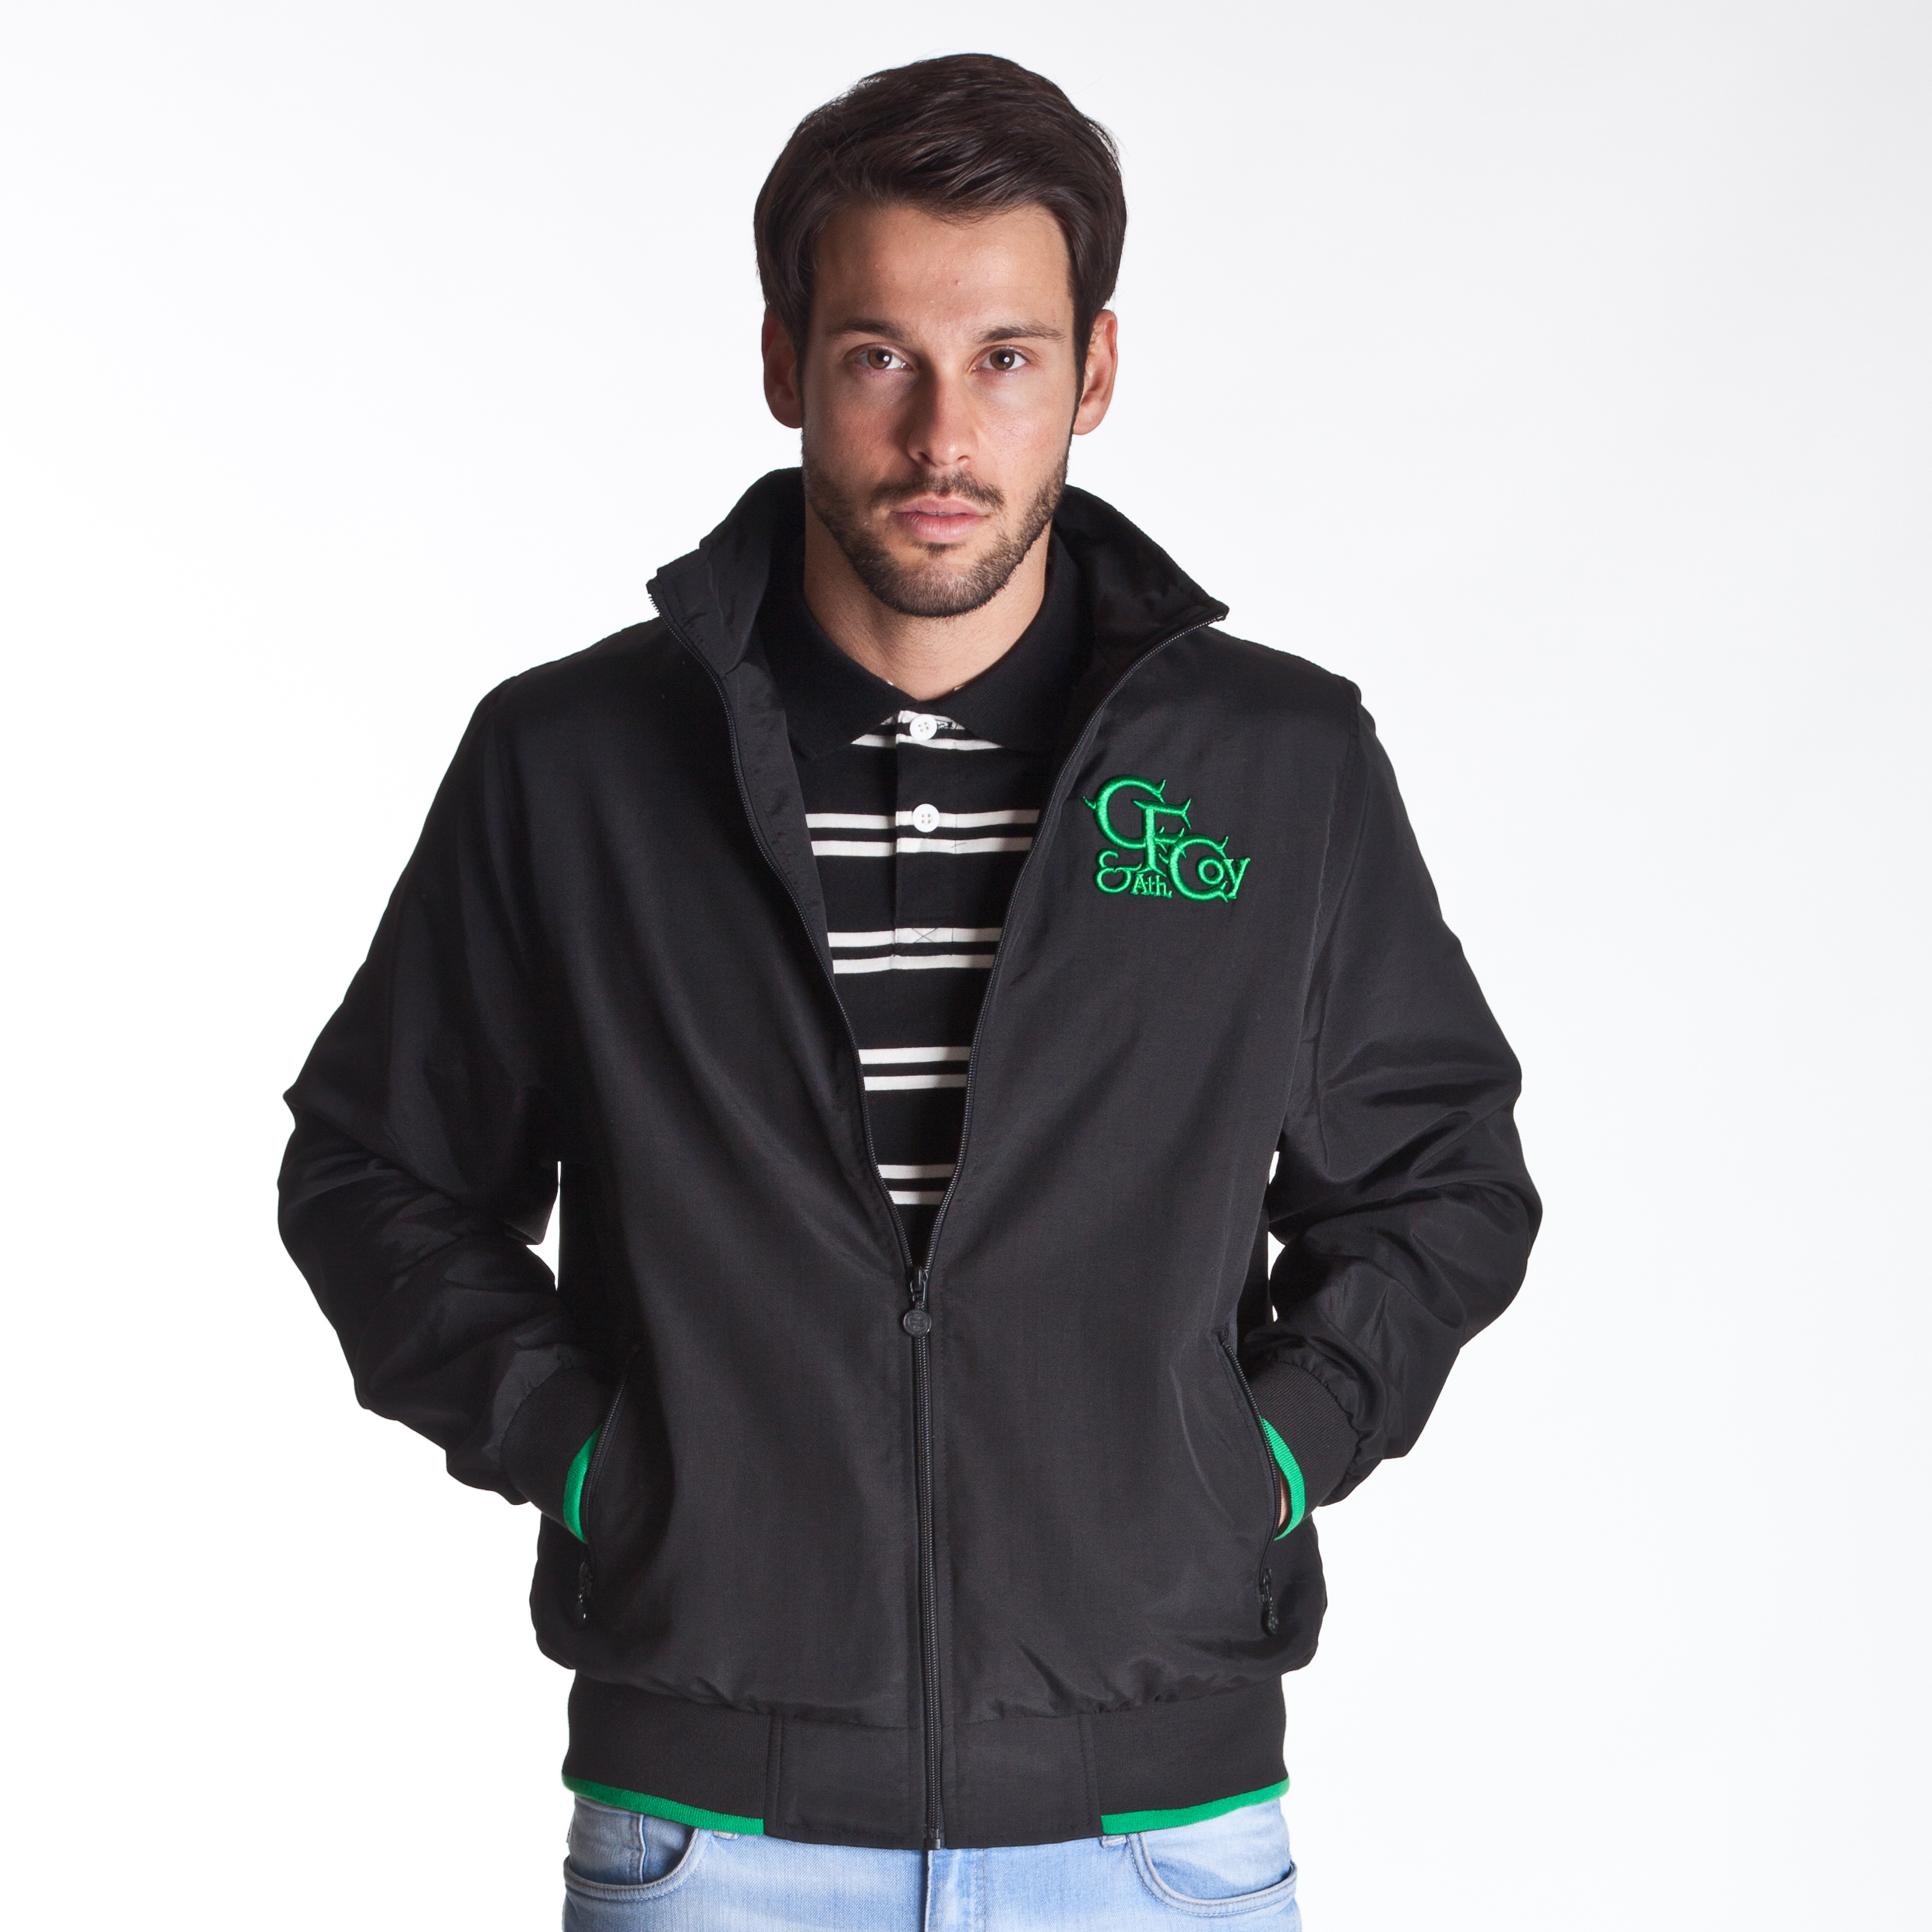 Celtic Heritage Bomber jacket  - Mens Black